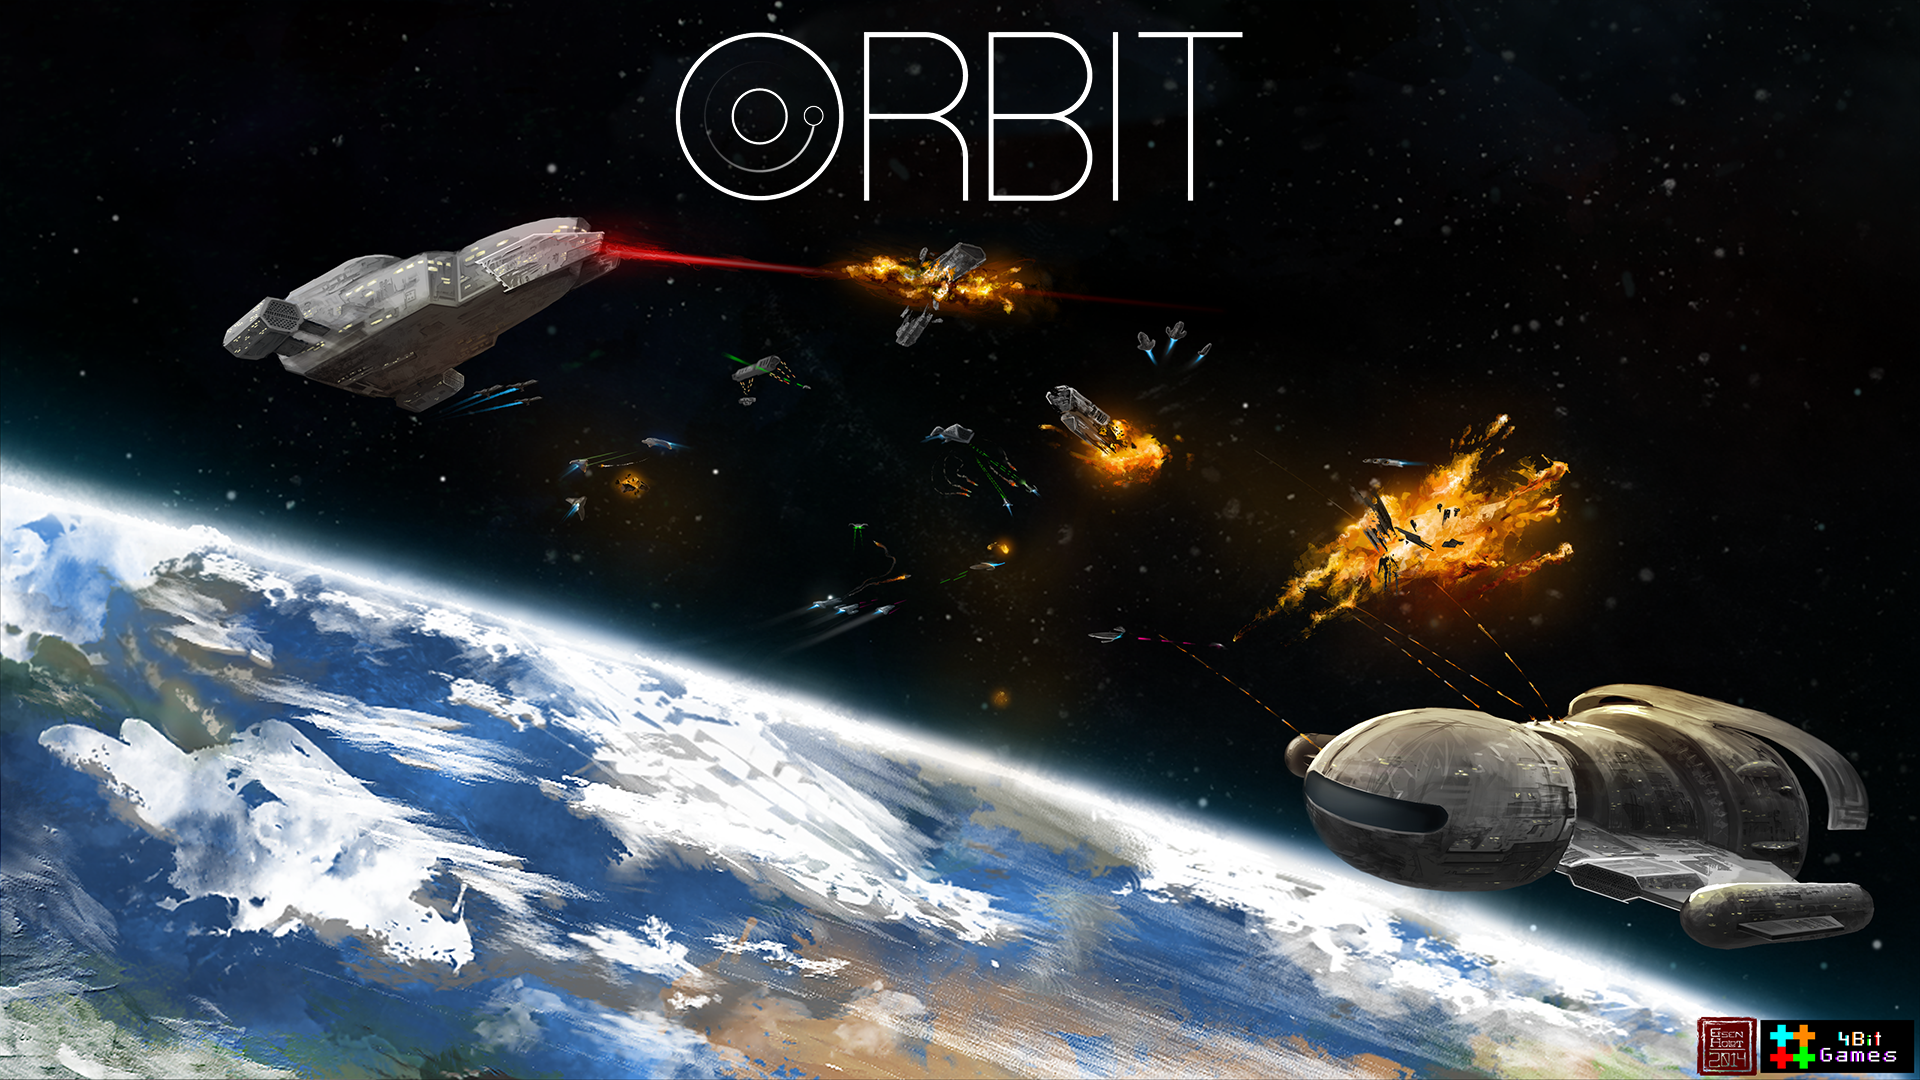 ORIBT_promotional02.png